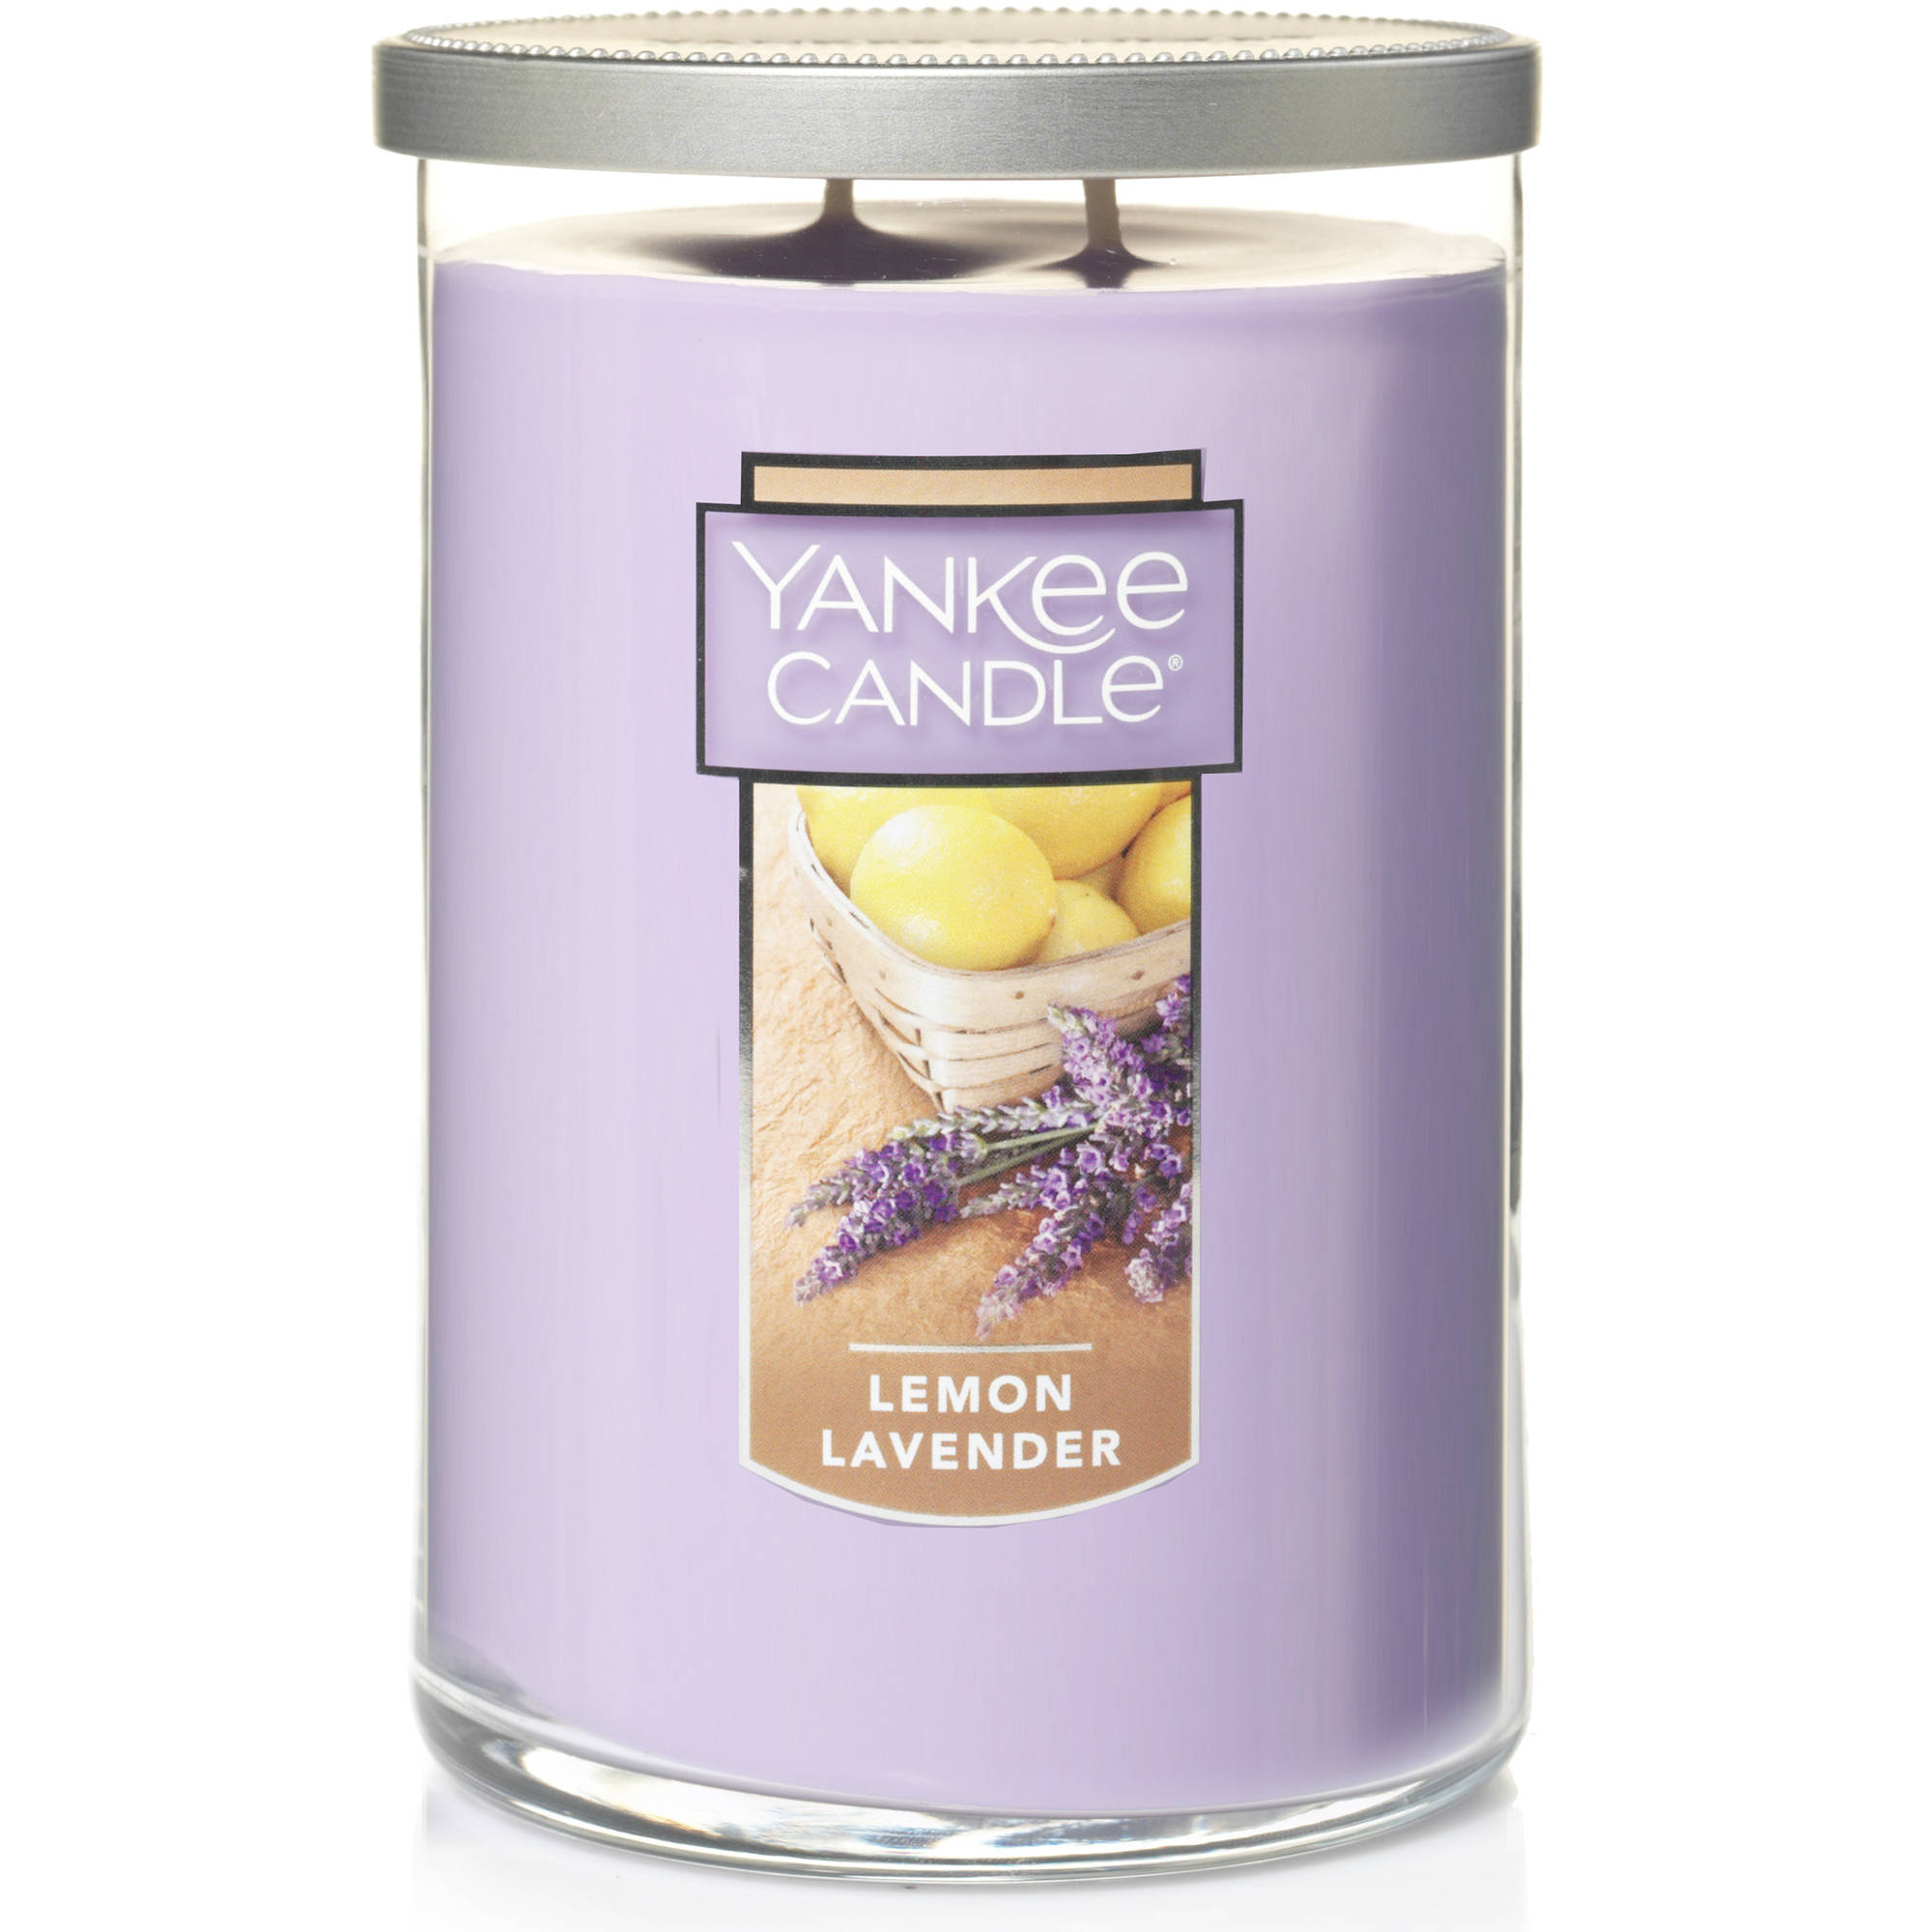 Yankee Candle Large 2-Wick Tumbler Candle, Lemon Lavender